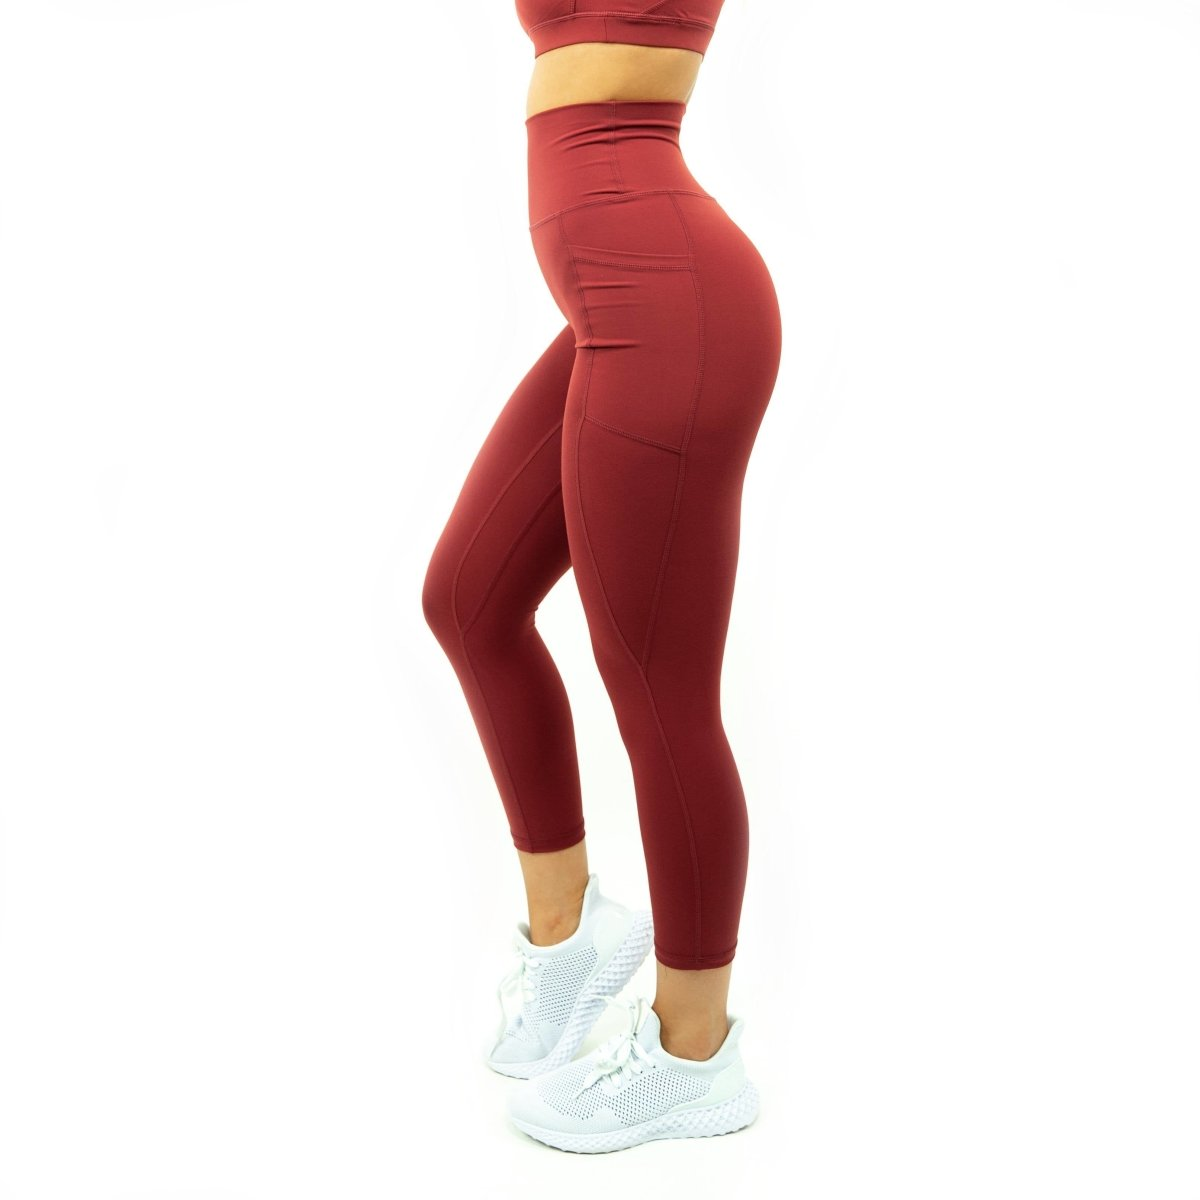 Pocket Leggings in Red Dahlia - Southern Athletica